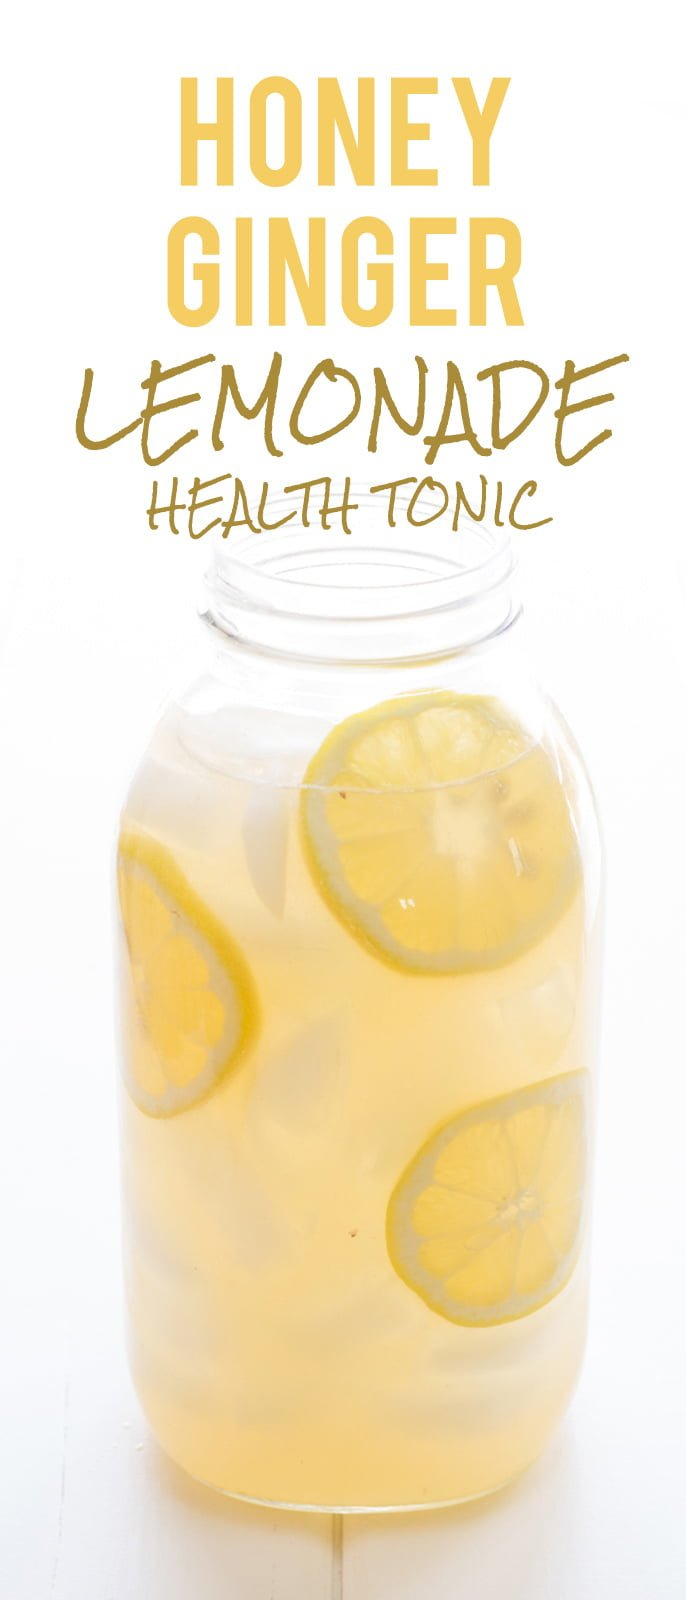 Part tasty drink and part heath tonic, this Honey Ginger Lemonade is ...